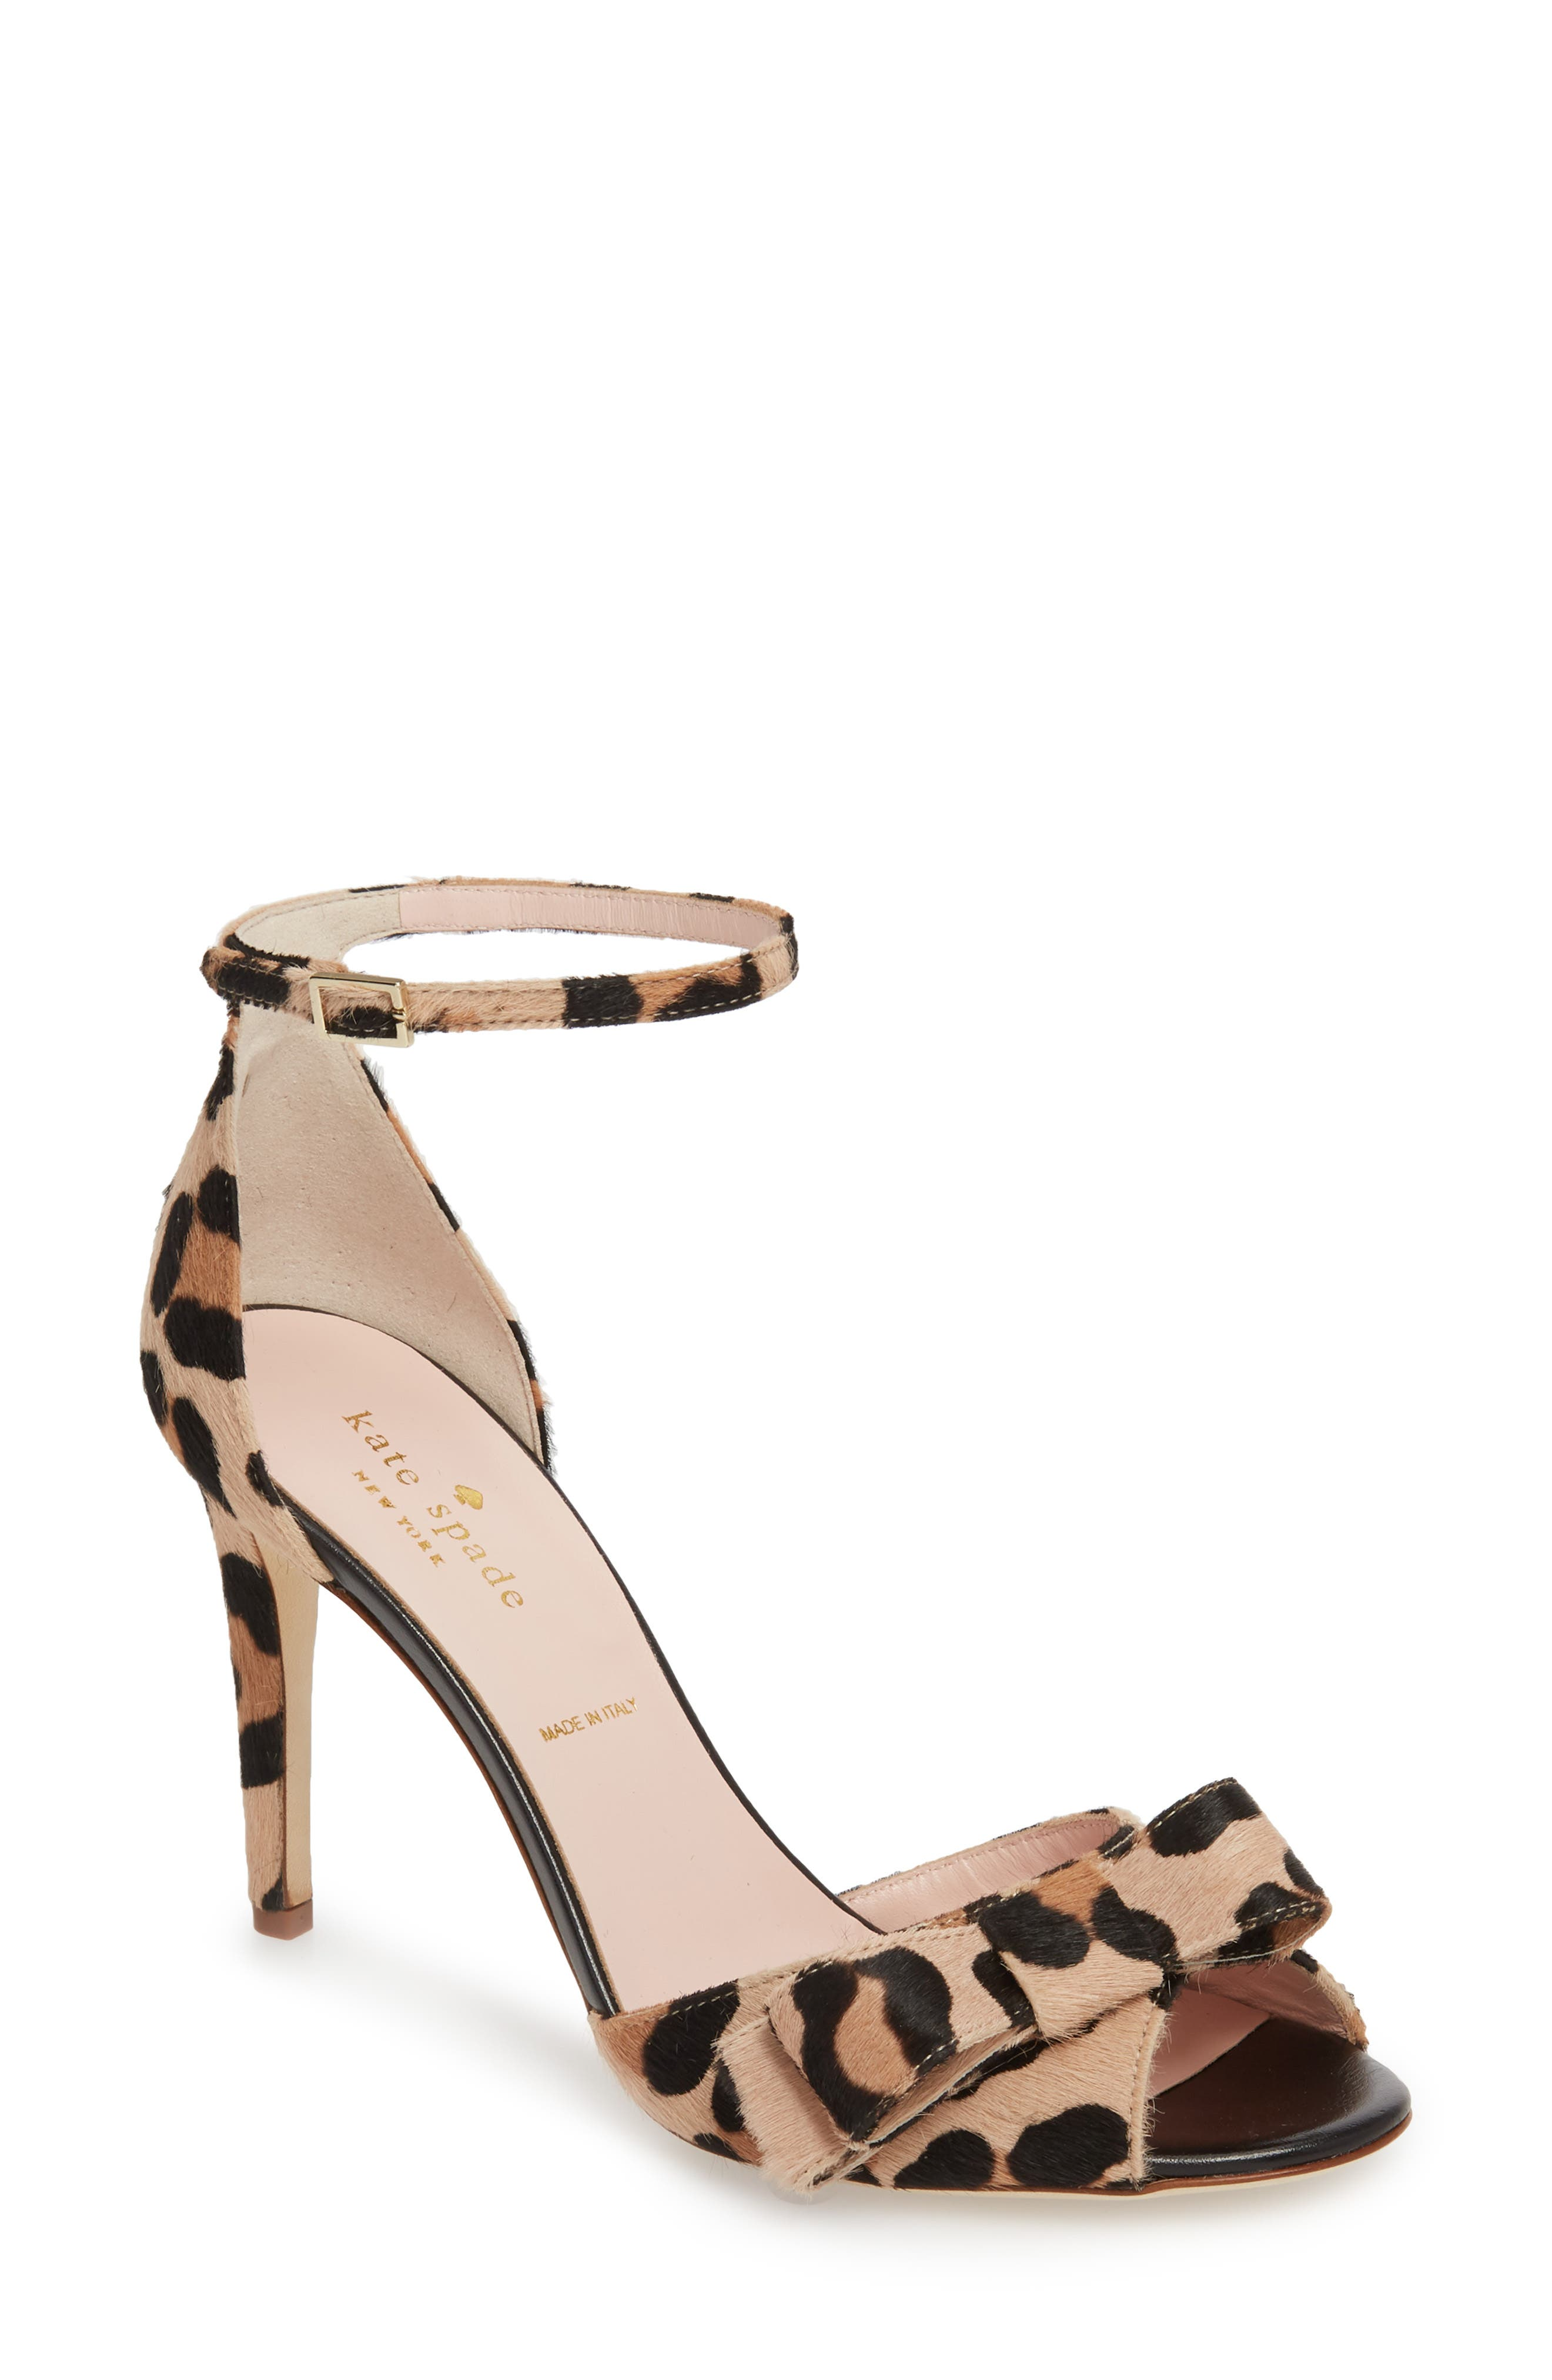 Kate Spade New York Women's Ismay Ankle Strap Sandal